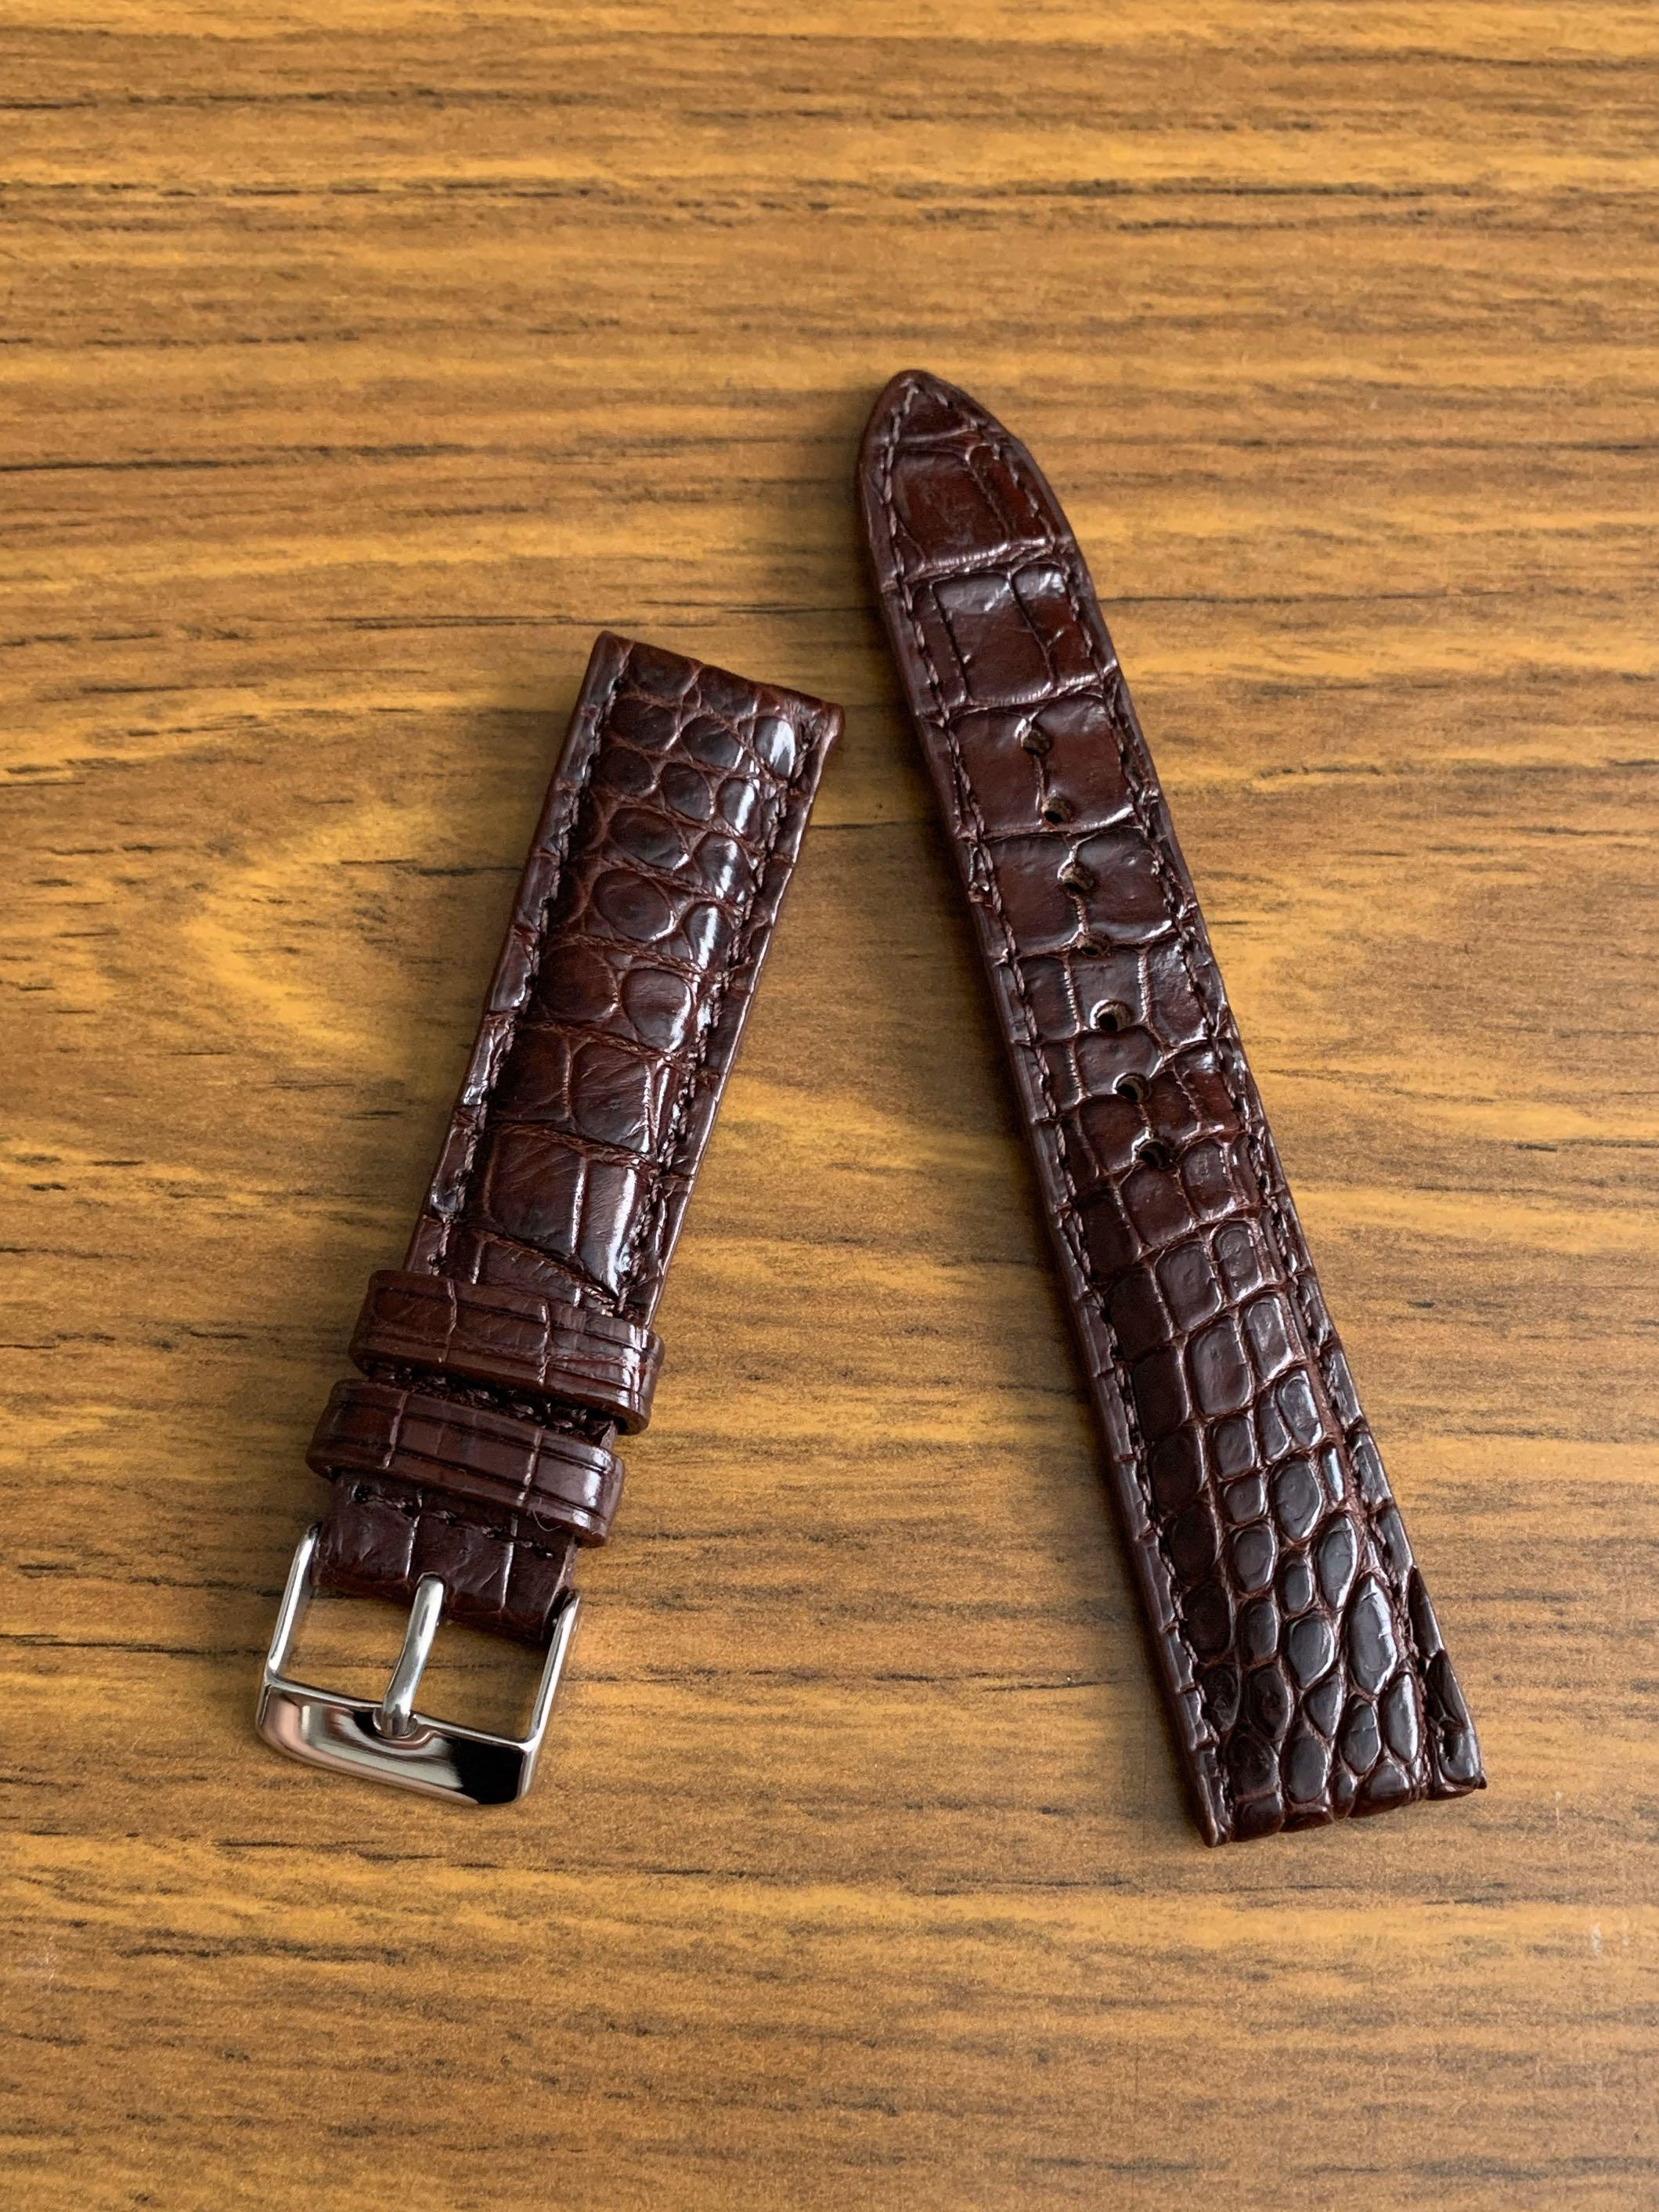 [DISCOUNTED] 20mm/18mm Authentic Dark Burgundy Brown Crocodile 🐊 Alligator (rugged multi scales) Watch Strap  - very nice on vintage and modern watches! standard length- L:120mm, S:75mm 😊only 1 piece!! CB SALE!!😊